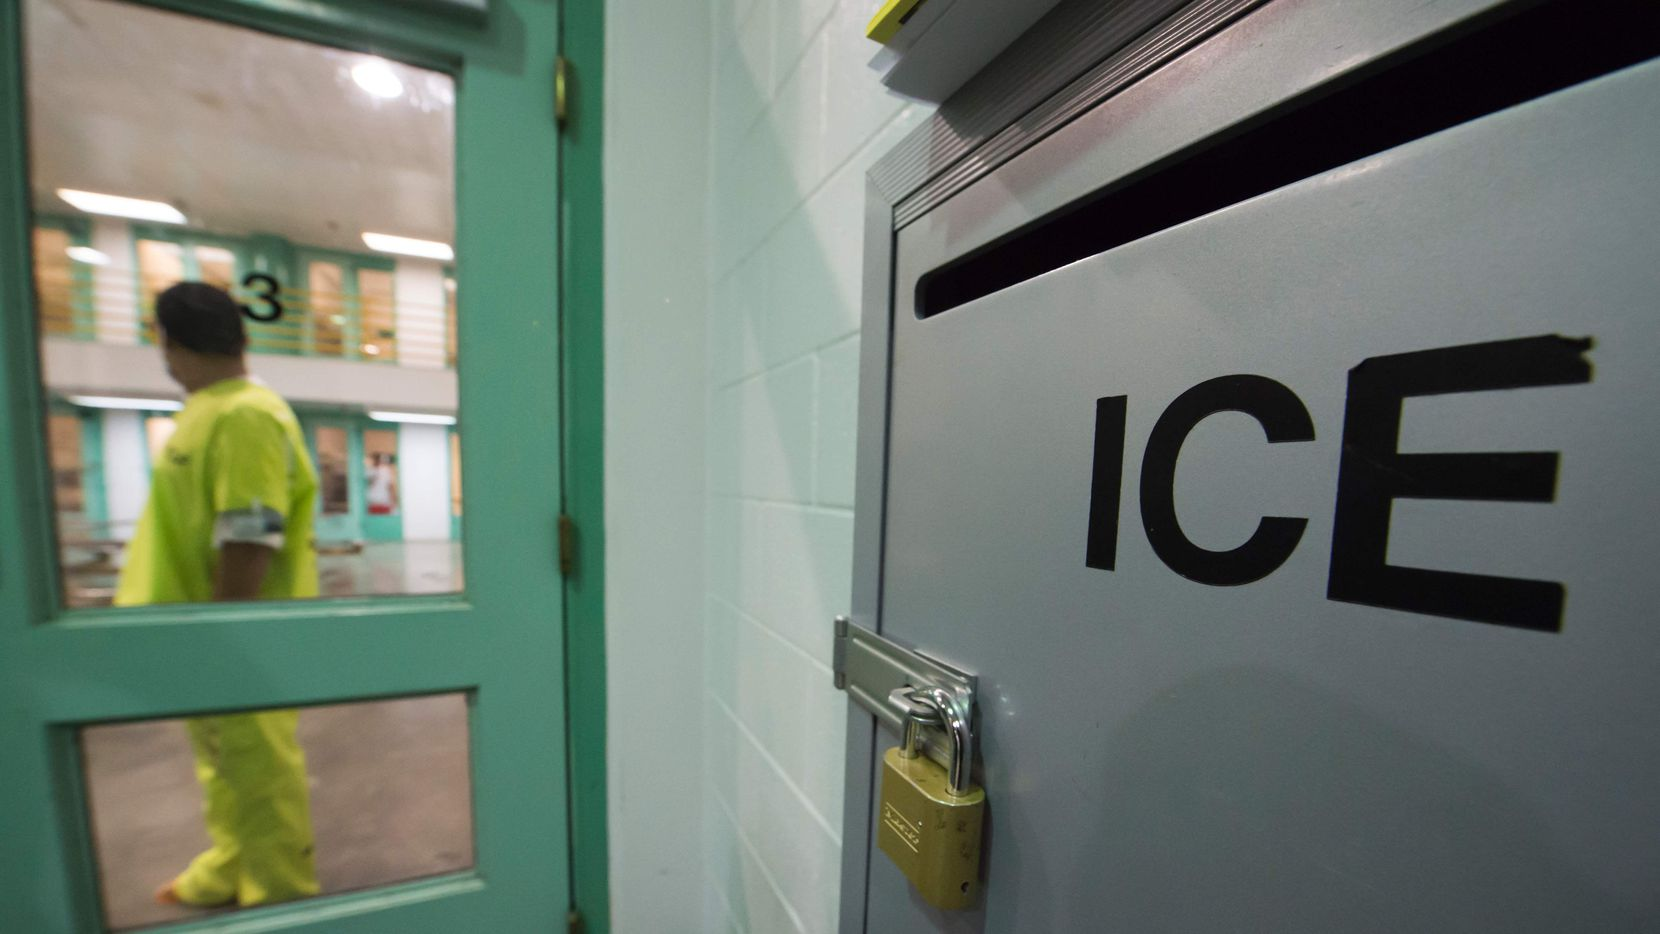 Centro de detención de ICE en Orange Califormia.(GETTY IMAGES)